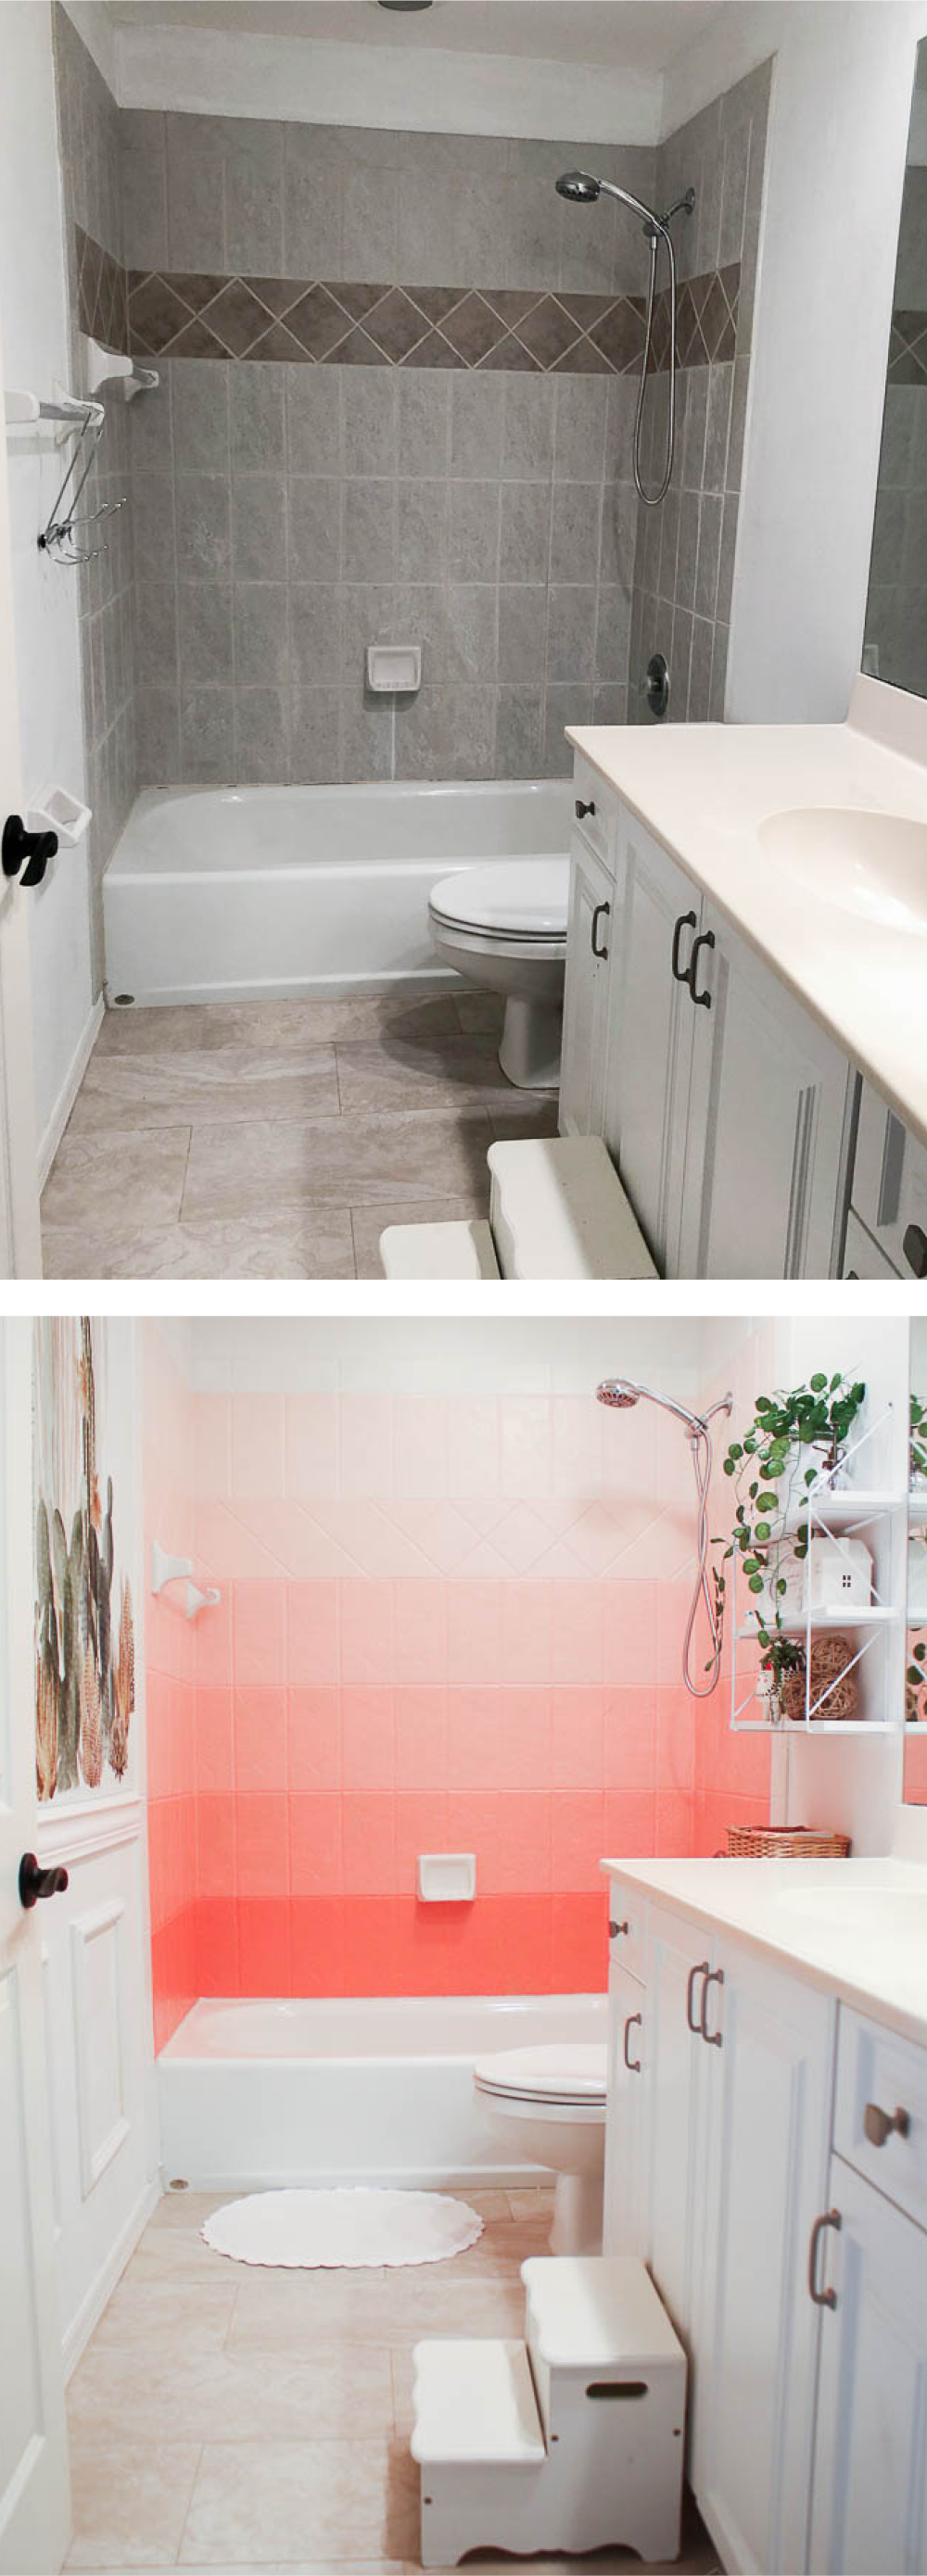 Before and after ombre painted shower tile DIY - how to paint shower tile